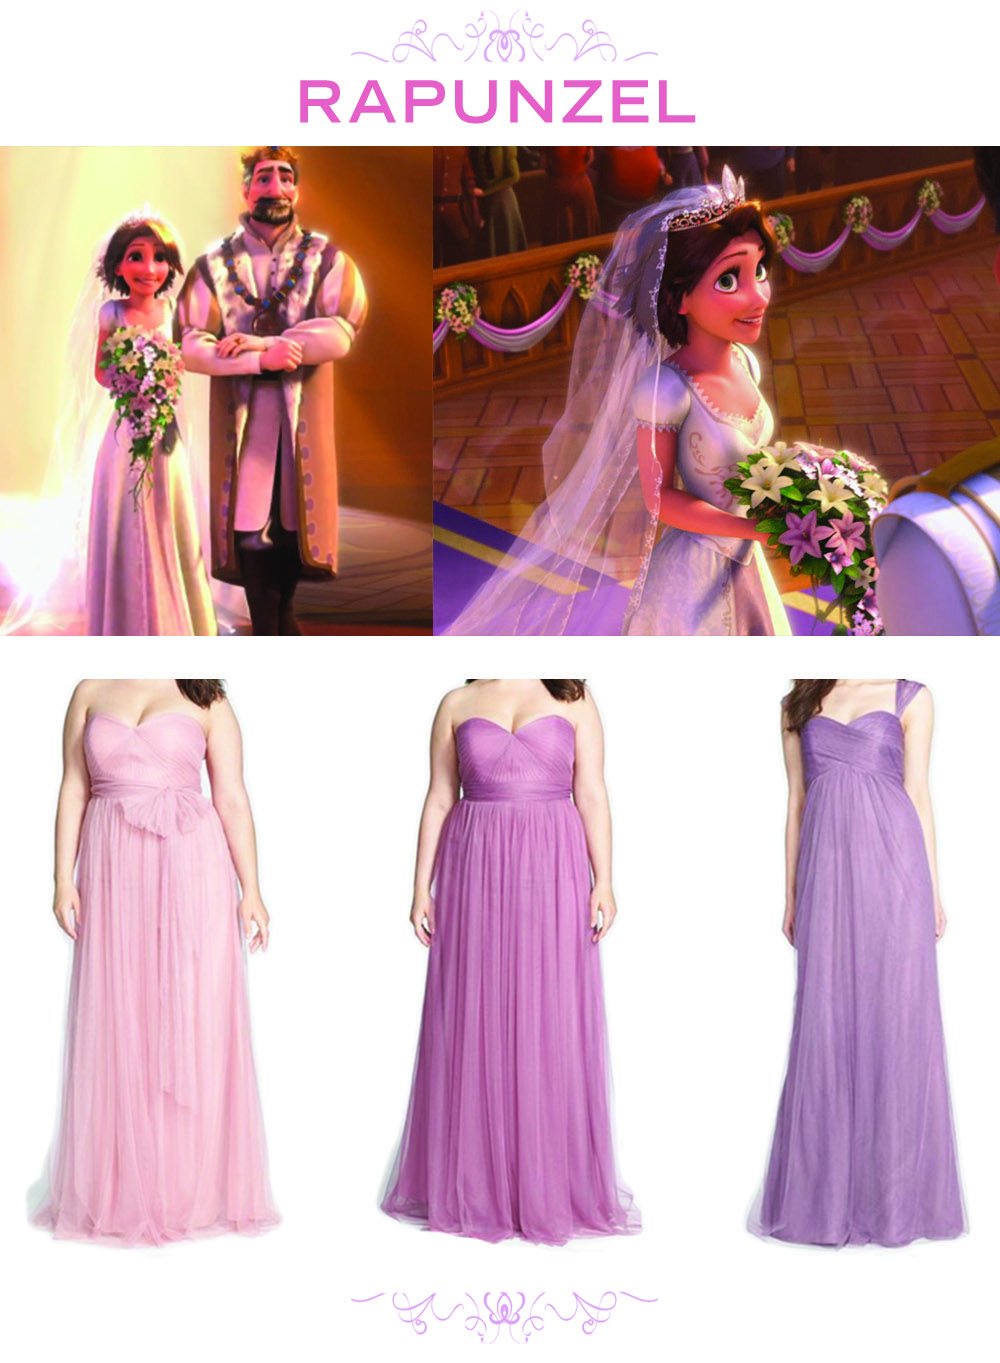 6 bridesmaid sets inspired by disney weddings tangled rapunzel 6 bridesmaid sets inspired by disney weddings ombrellifo Gallery